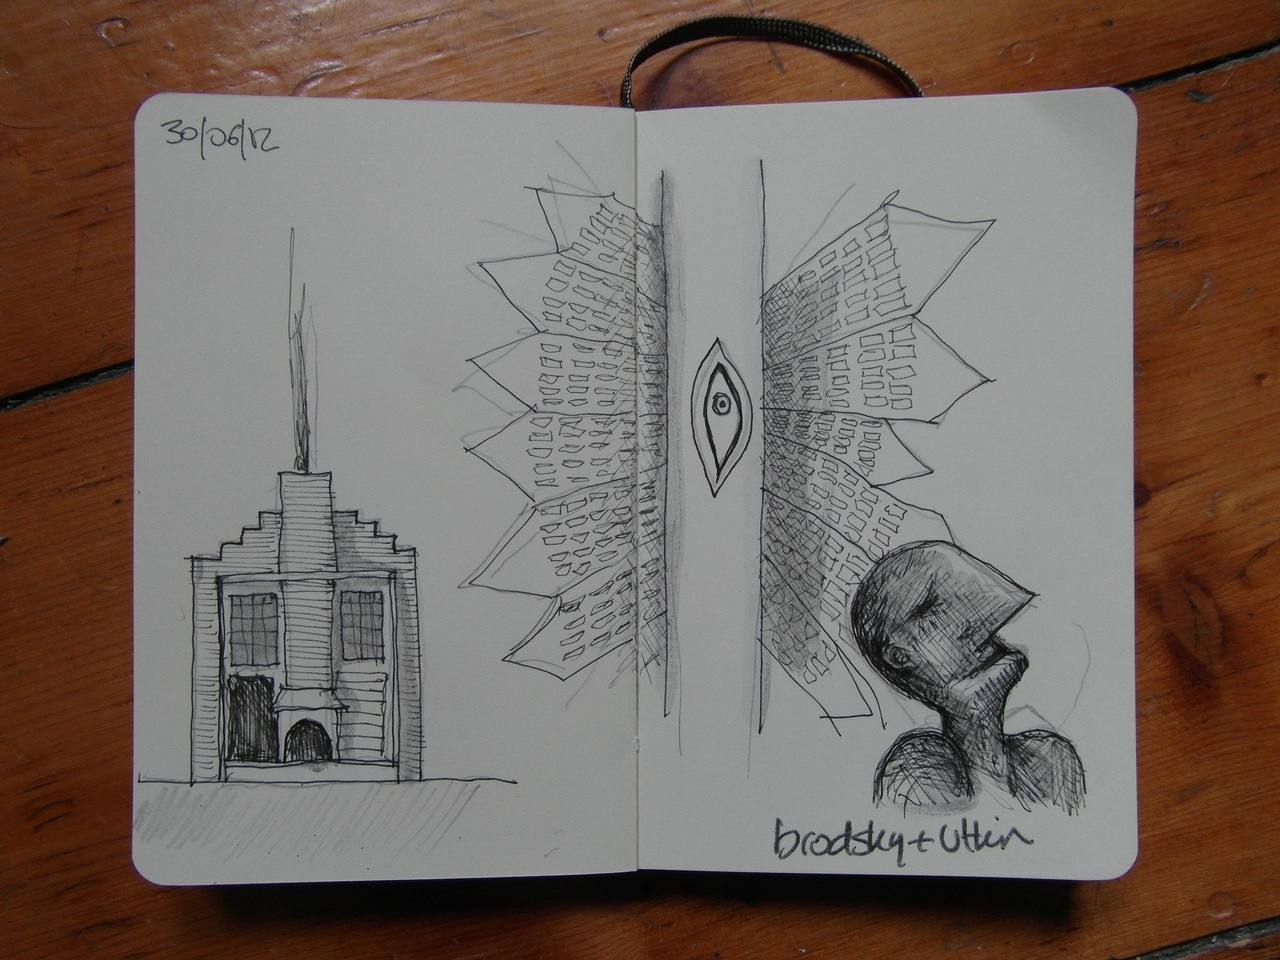 365 drawings later … day 151 … brodsky + utkin